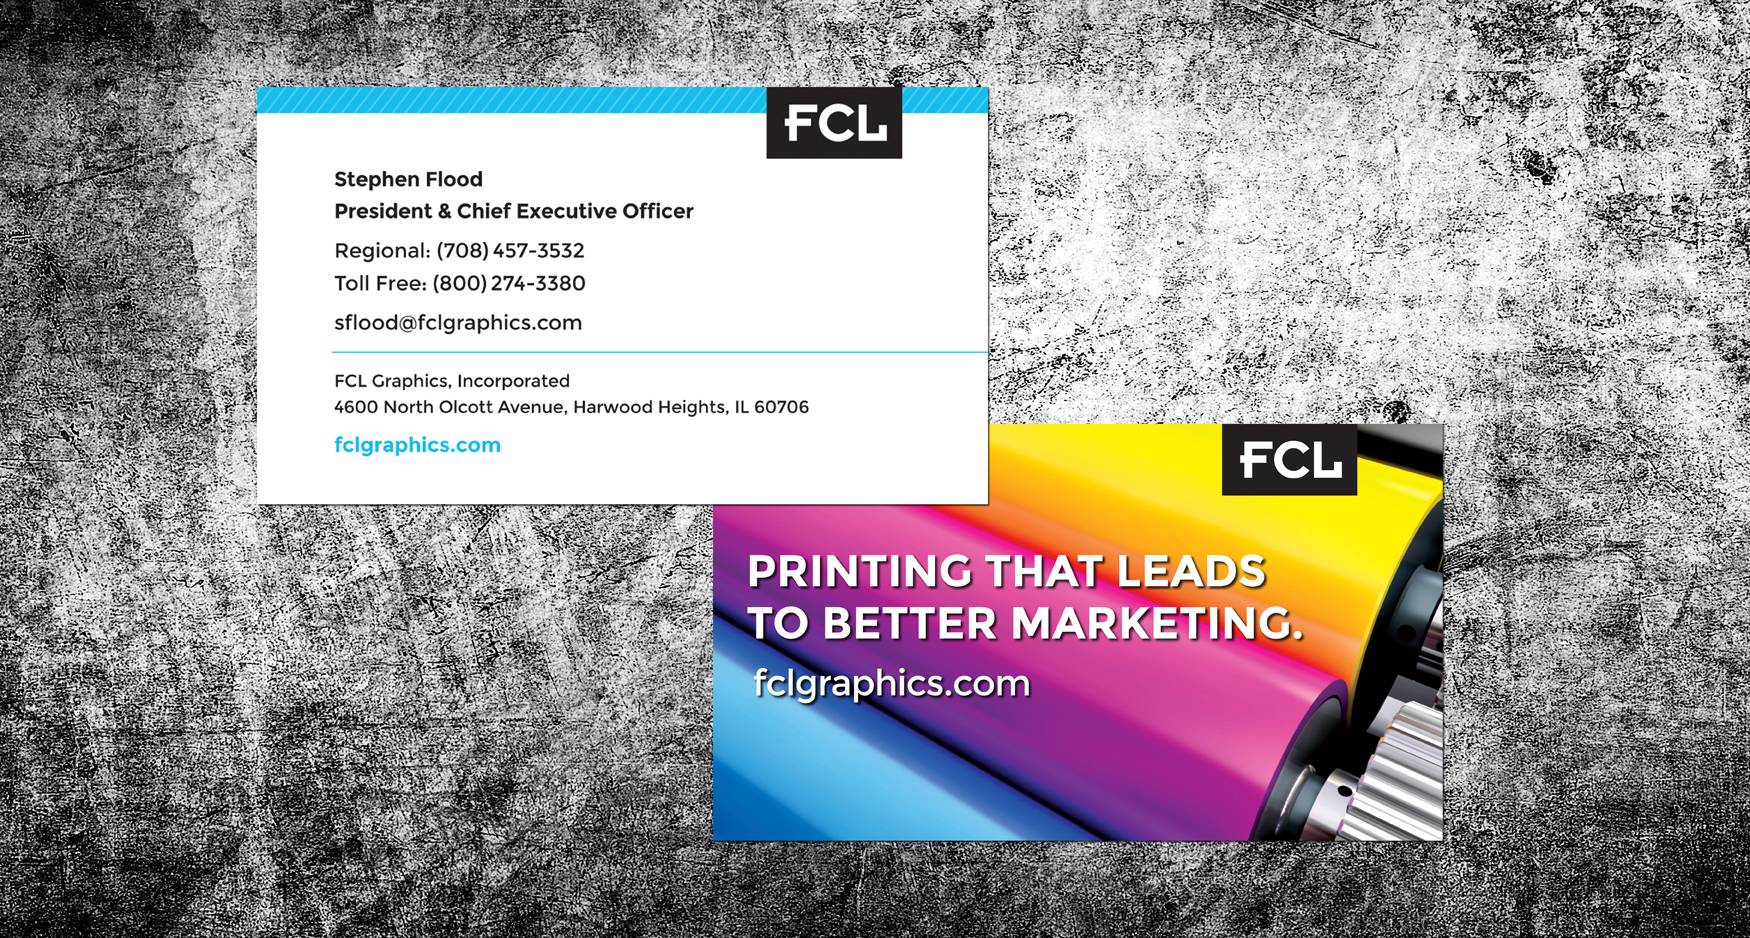 BP Large Website Images30 - FCL GRAPHICS - STATIONERY